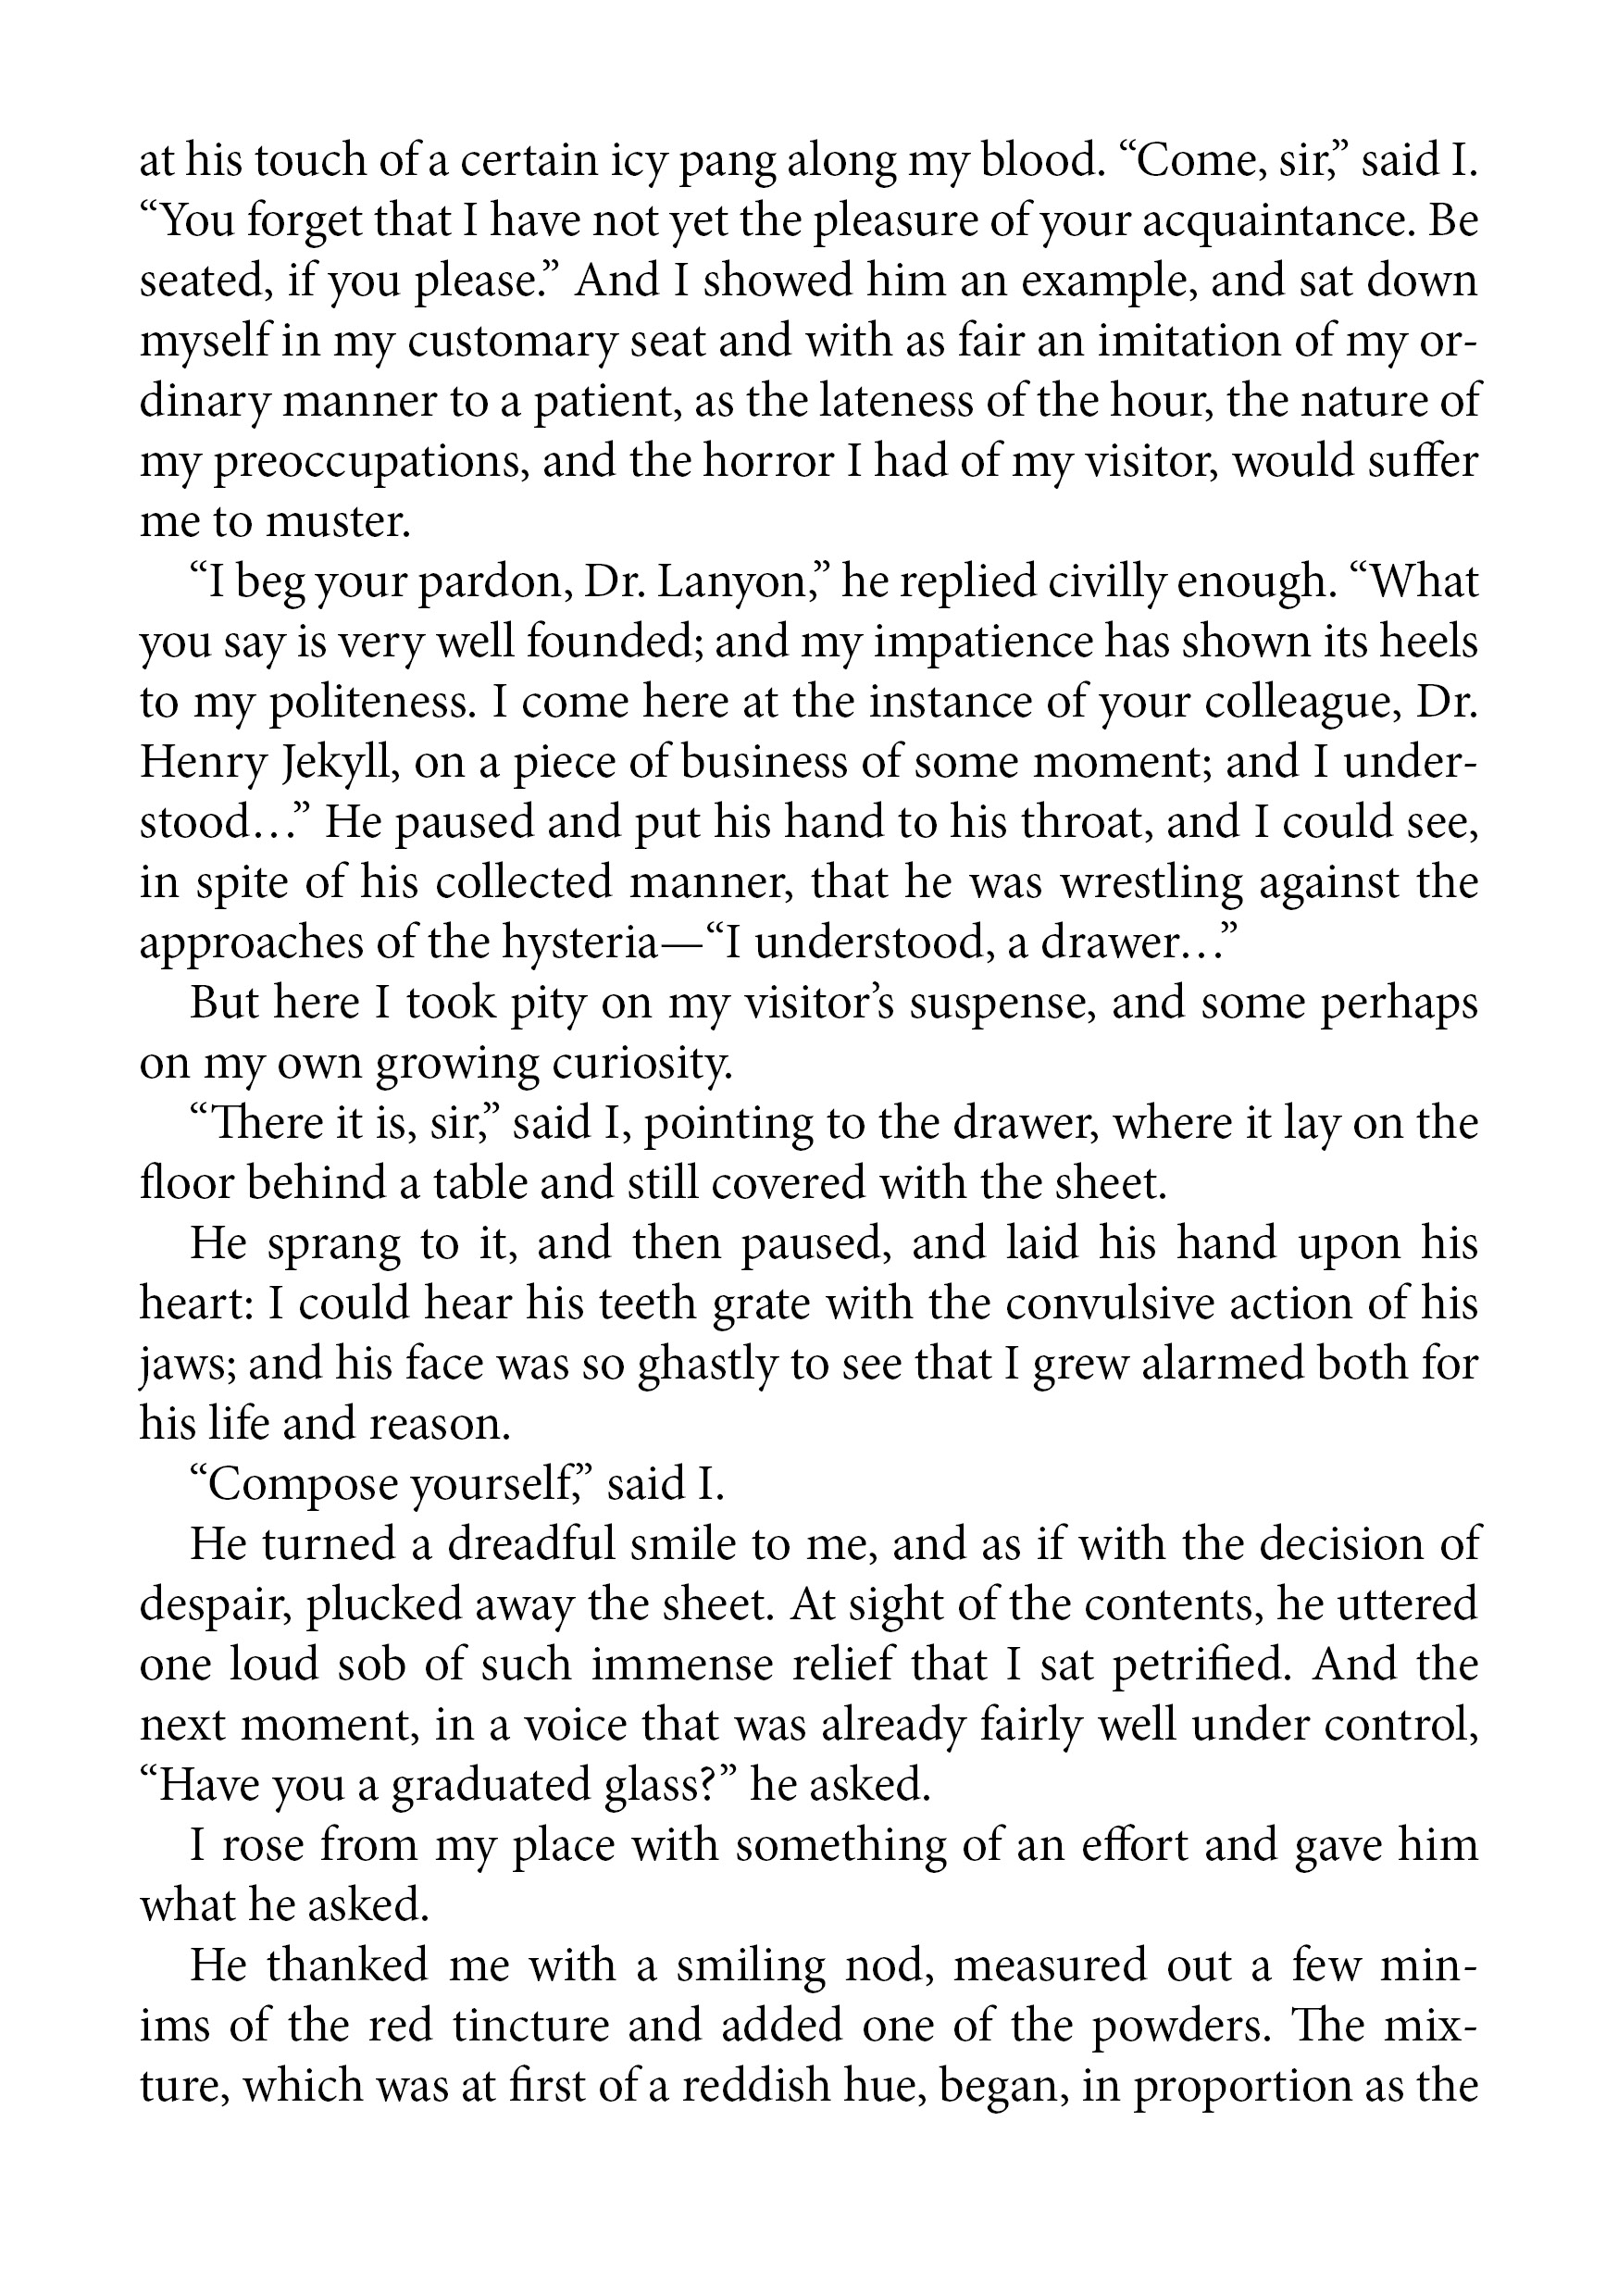 013 Dr  Jekyll And Mr Hyde Text One Paragraph Essay Awesome About Dwarfism TopicsFull